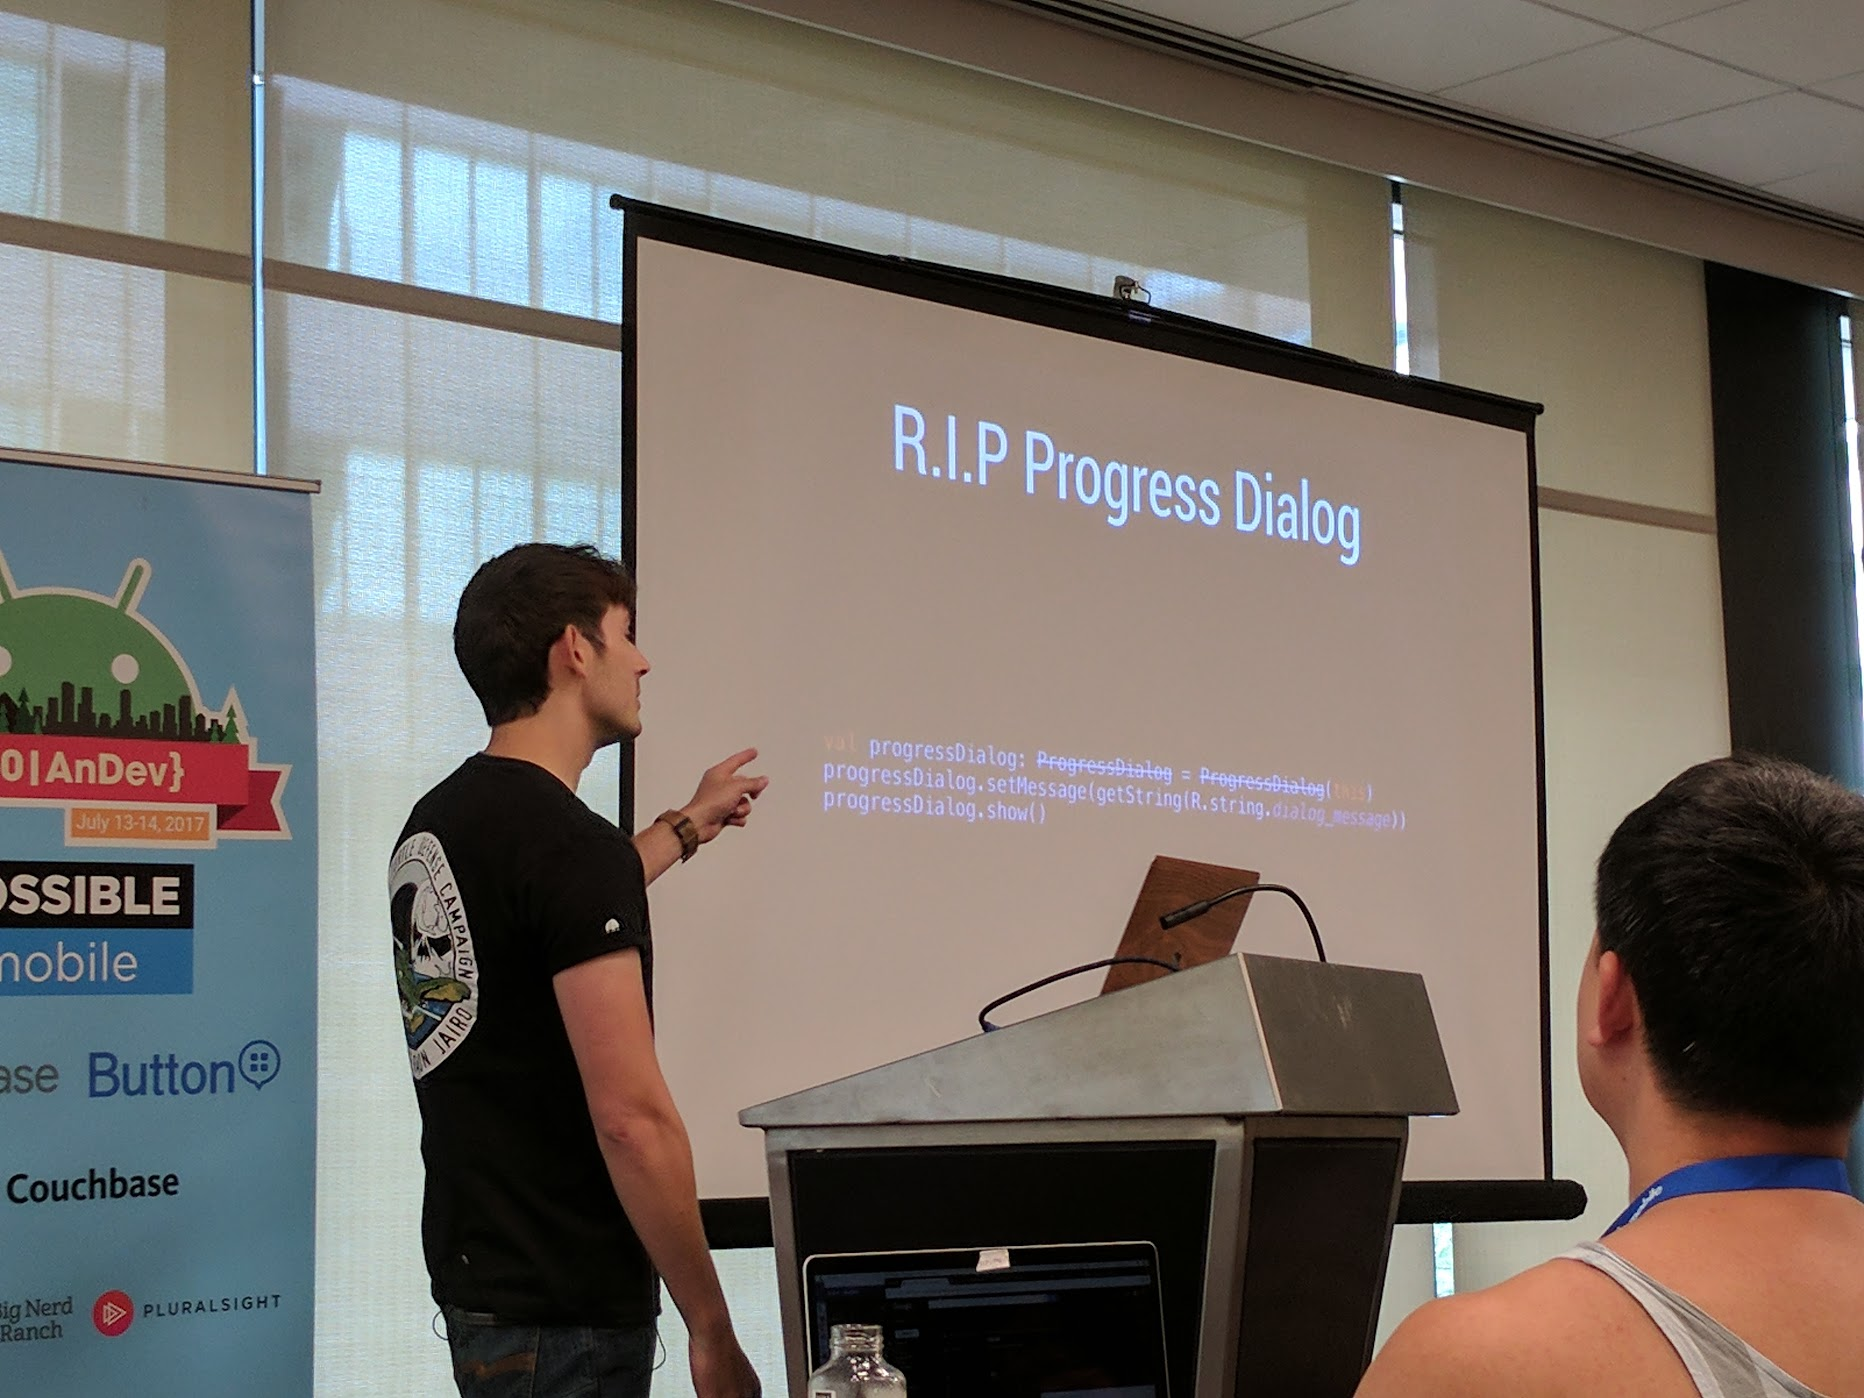 Joe Birch talking about removing removing progress dialogs for a more optimistic UI